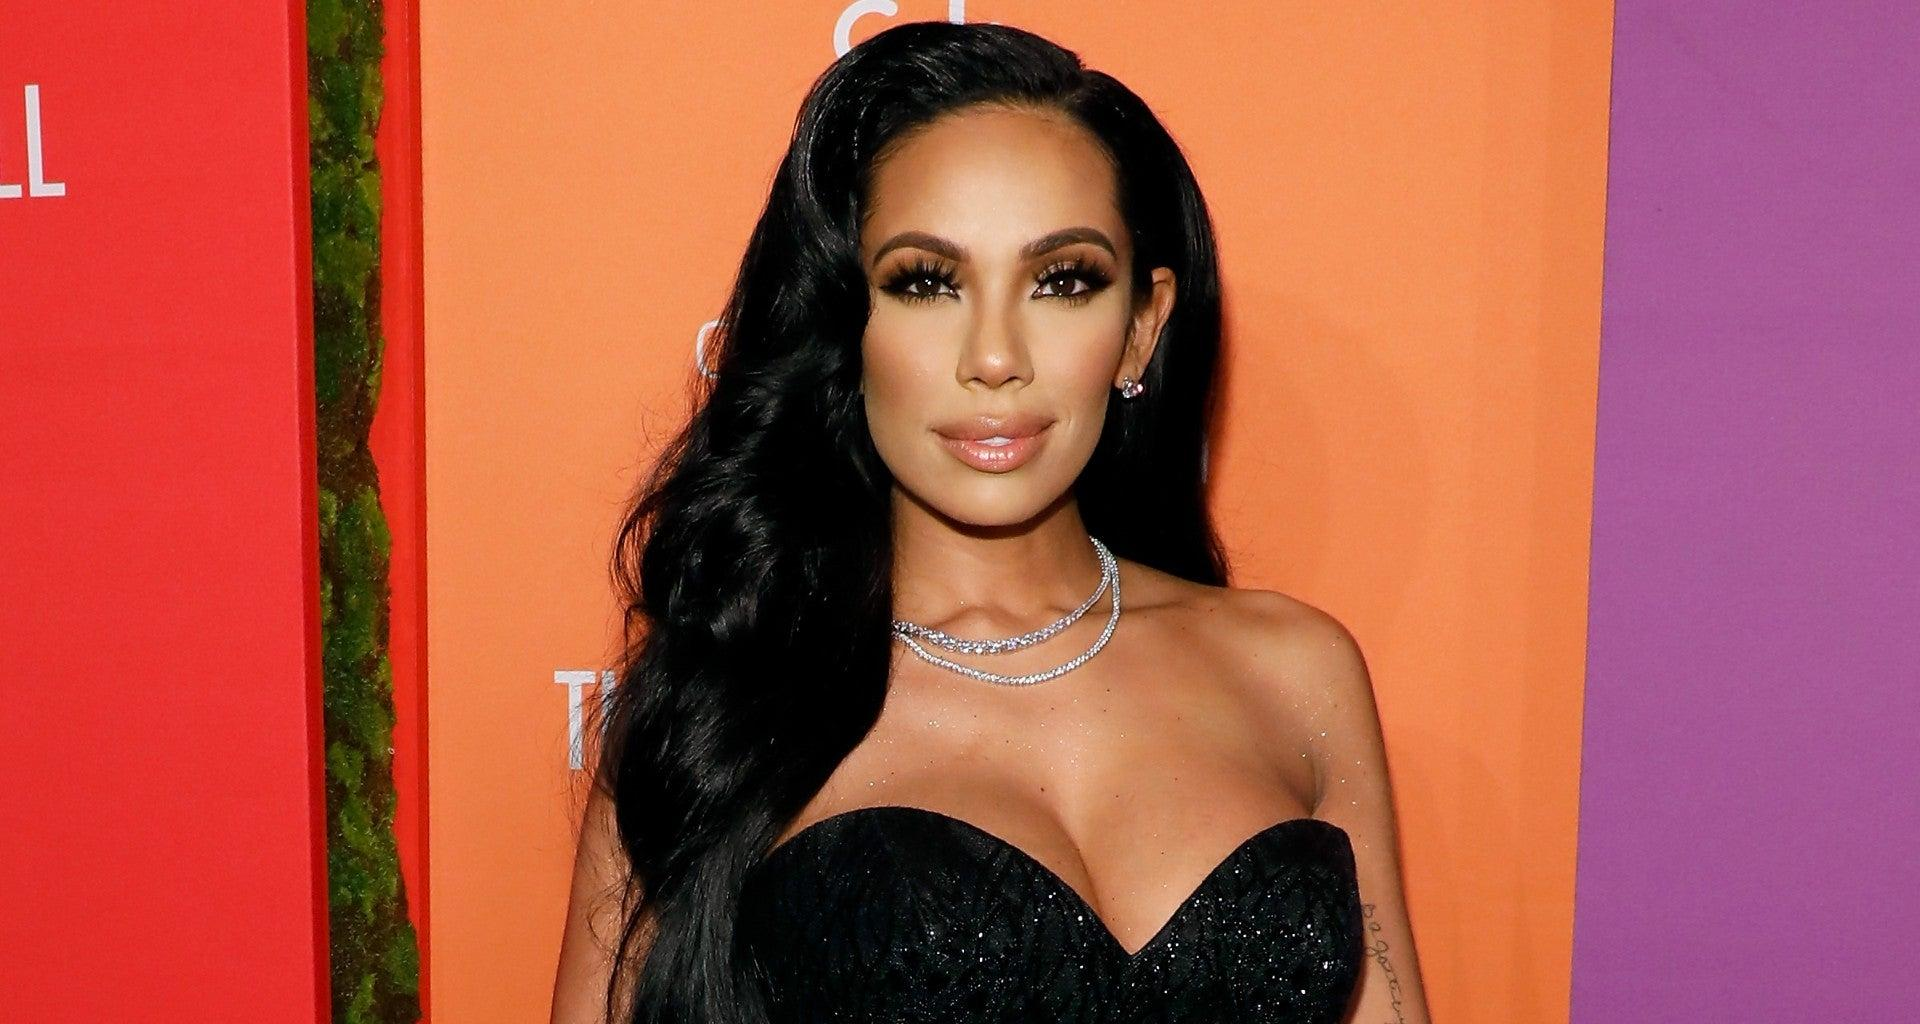 Erica Mena Shows Off Her Gorgeous Curves In This No Makeup Photo And Face Embrace Her Natural Look